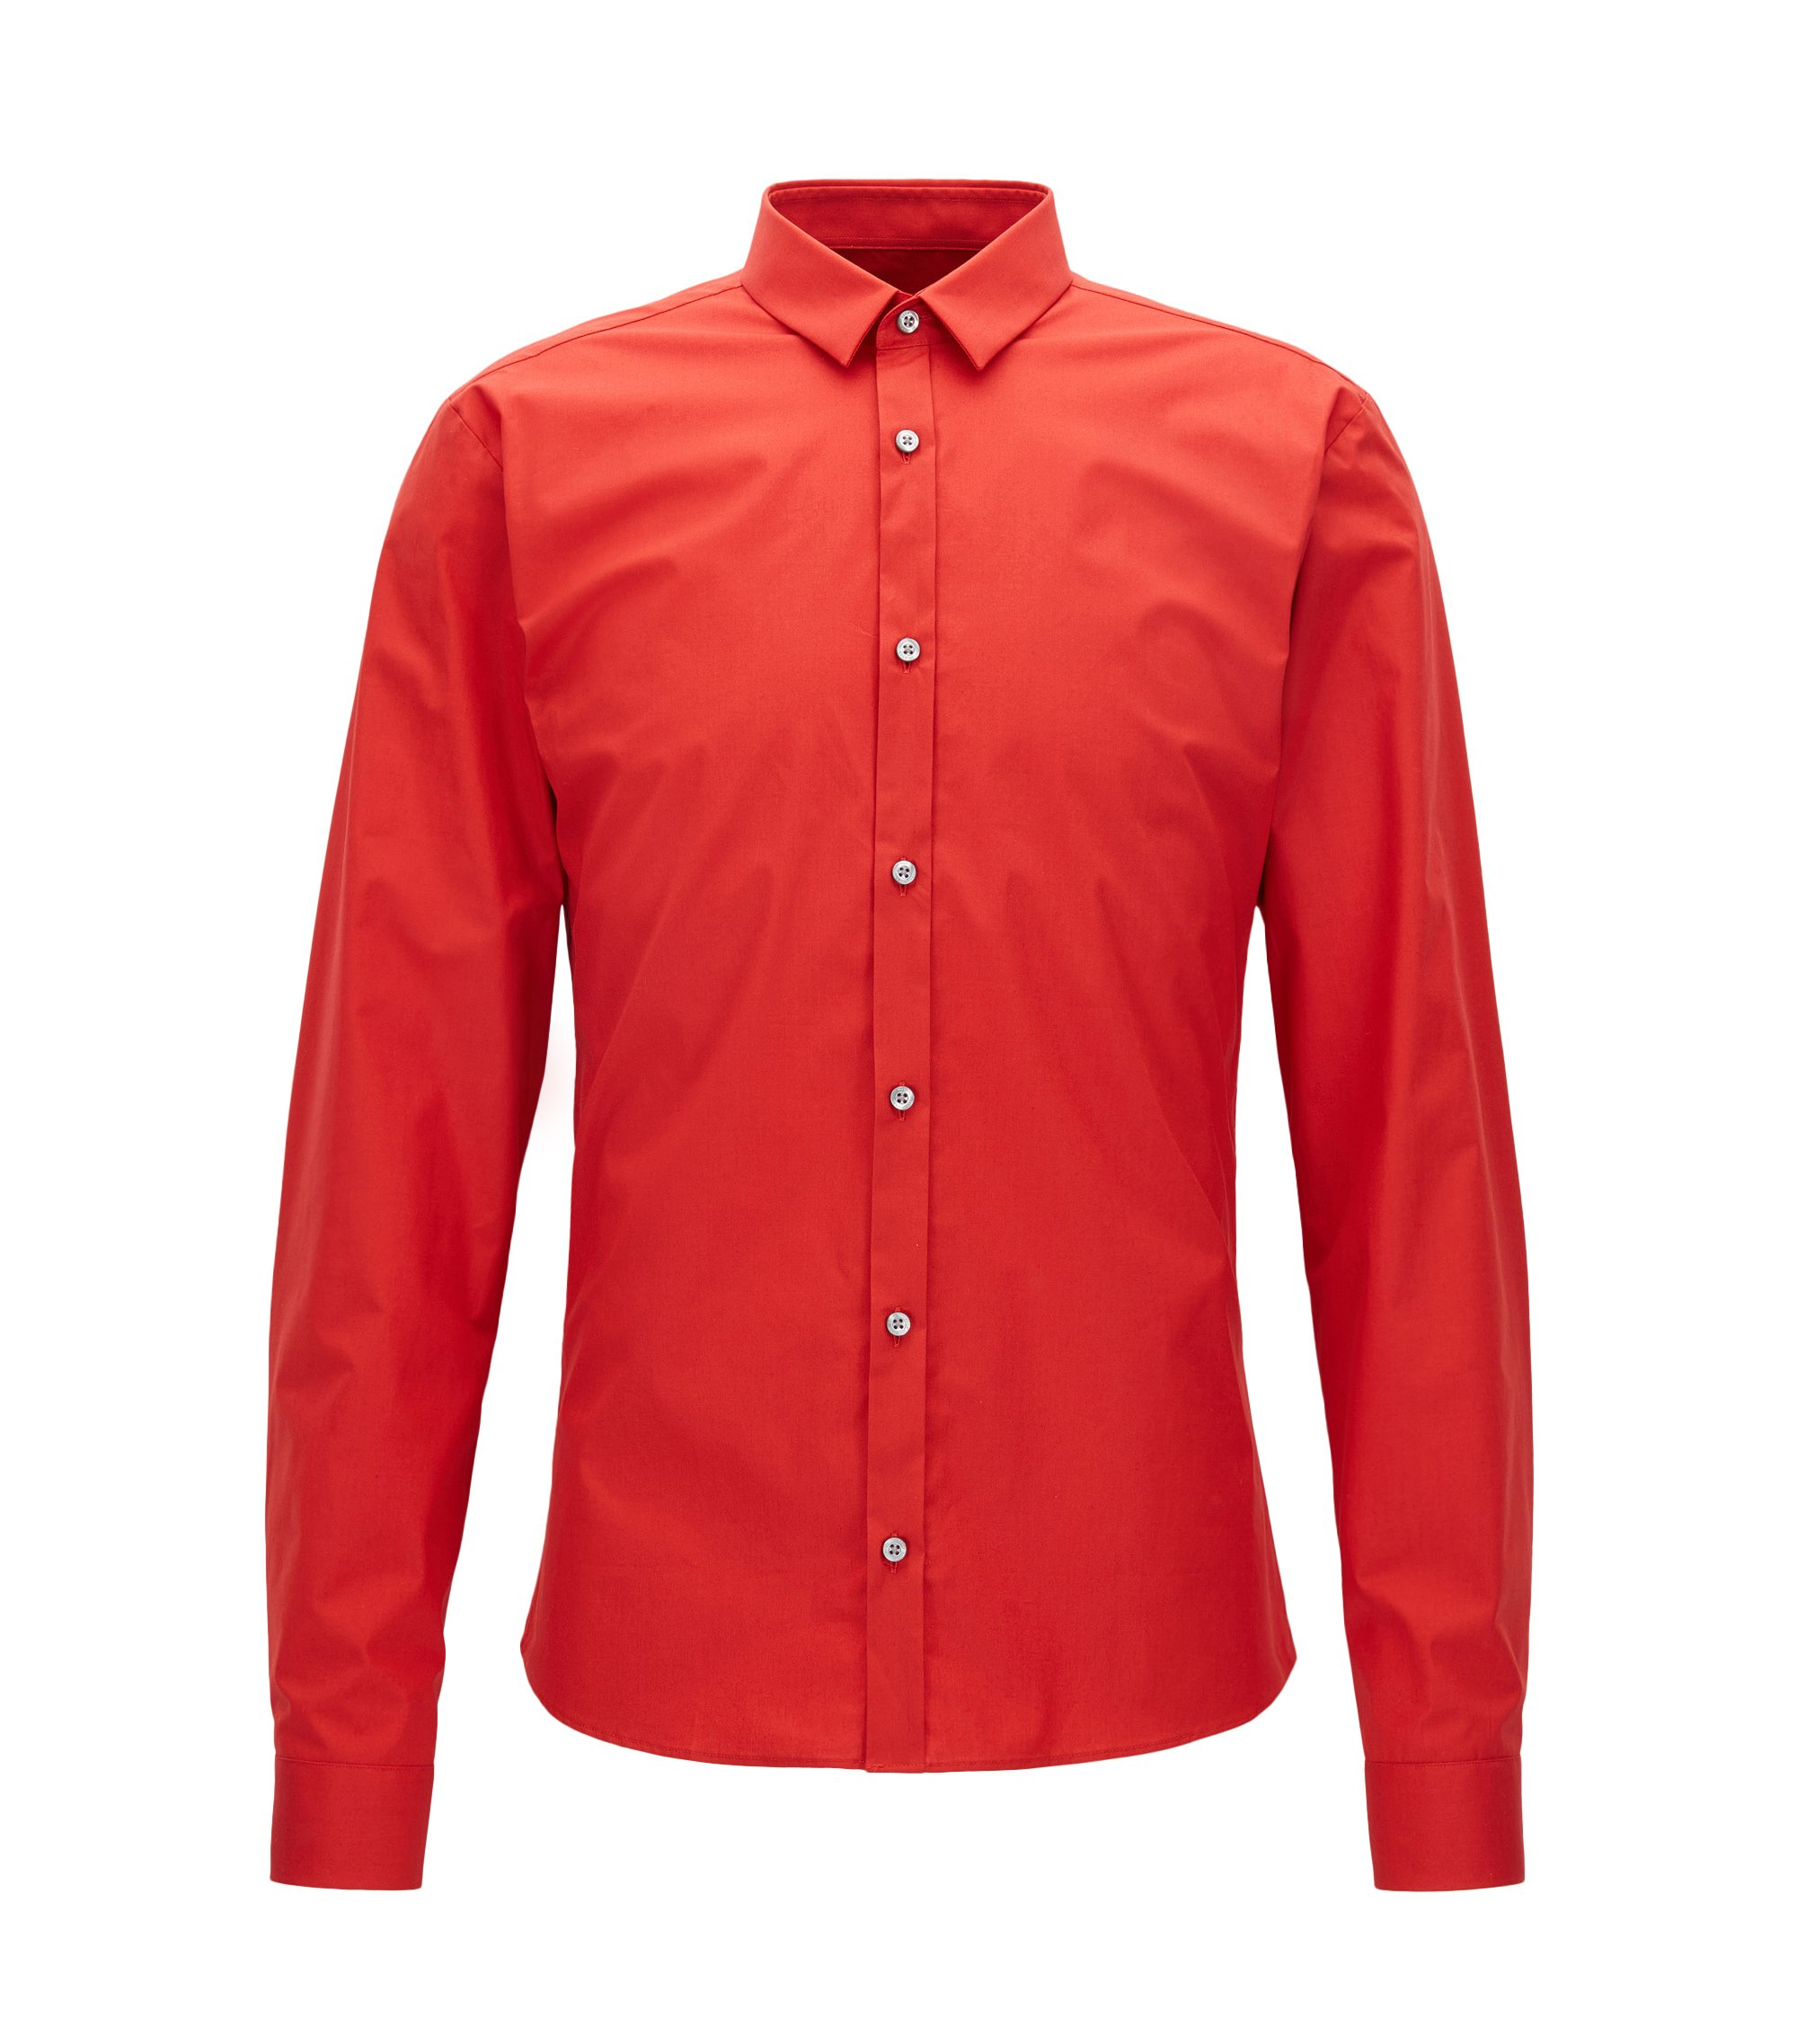 Stretch Cotton Button Down Shirt, Extra Slim Fit | Ero, Light Red